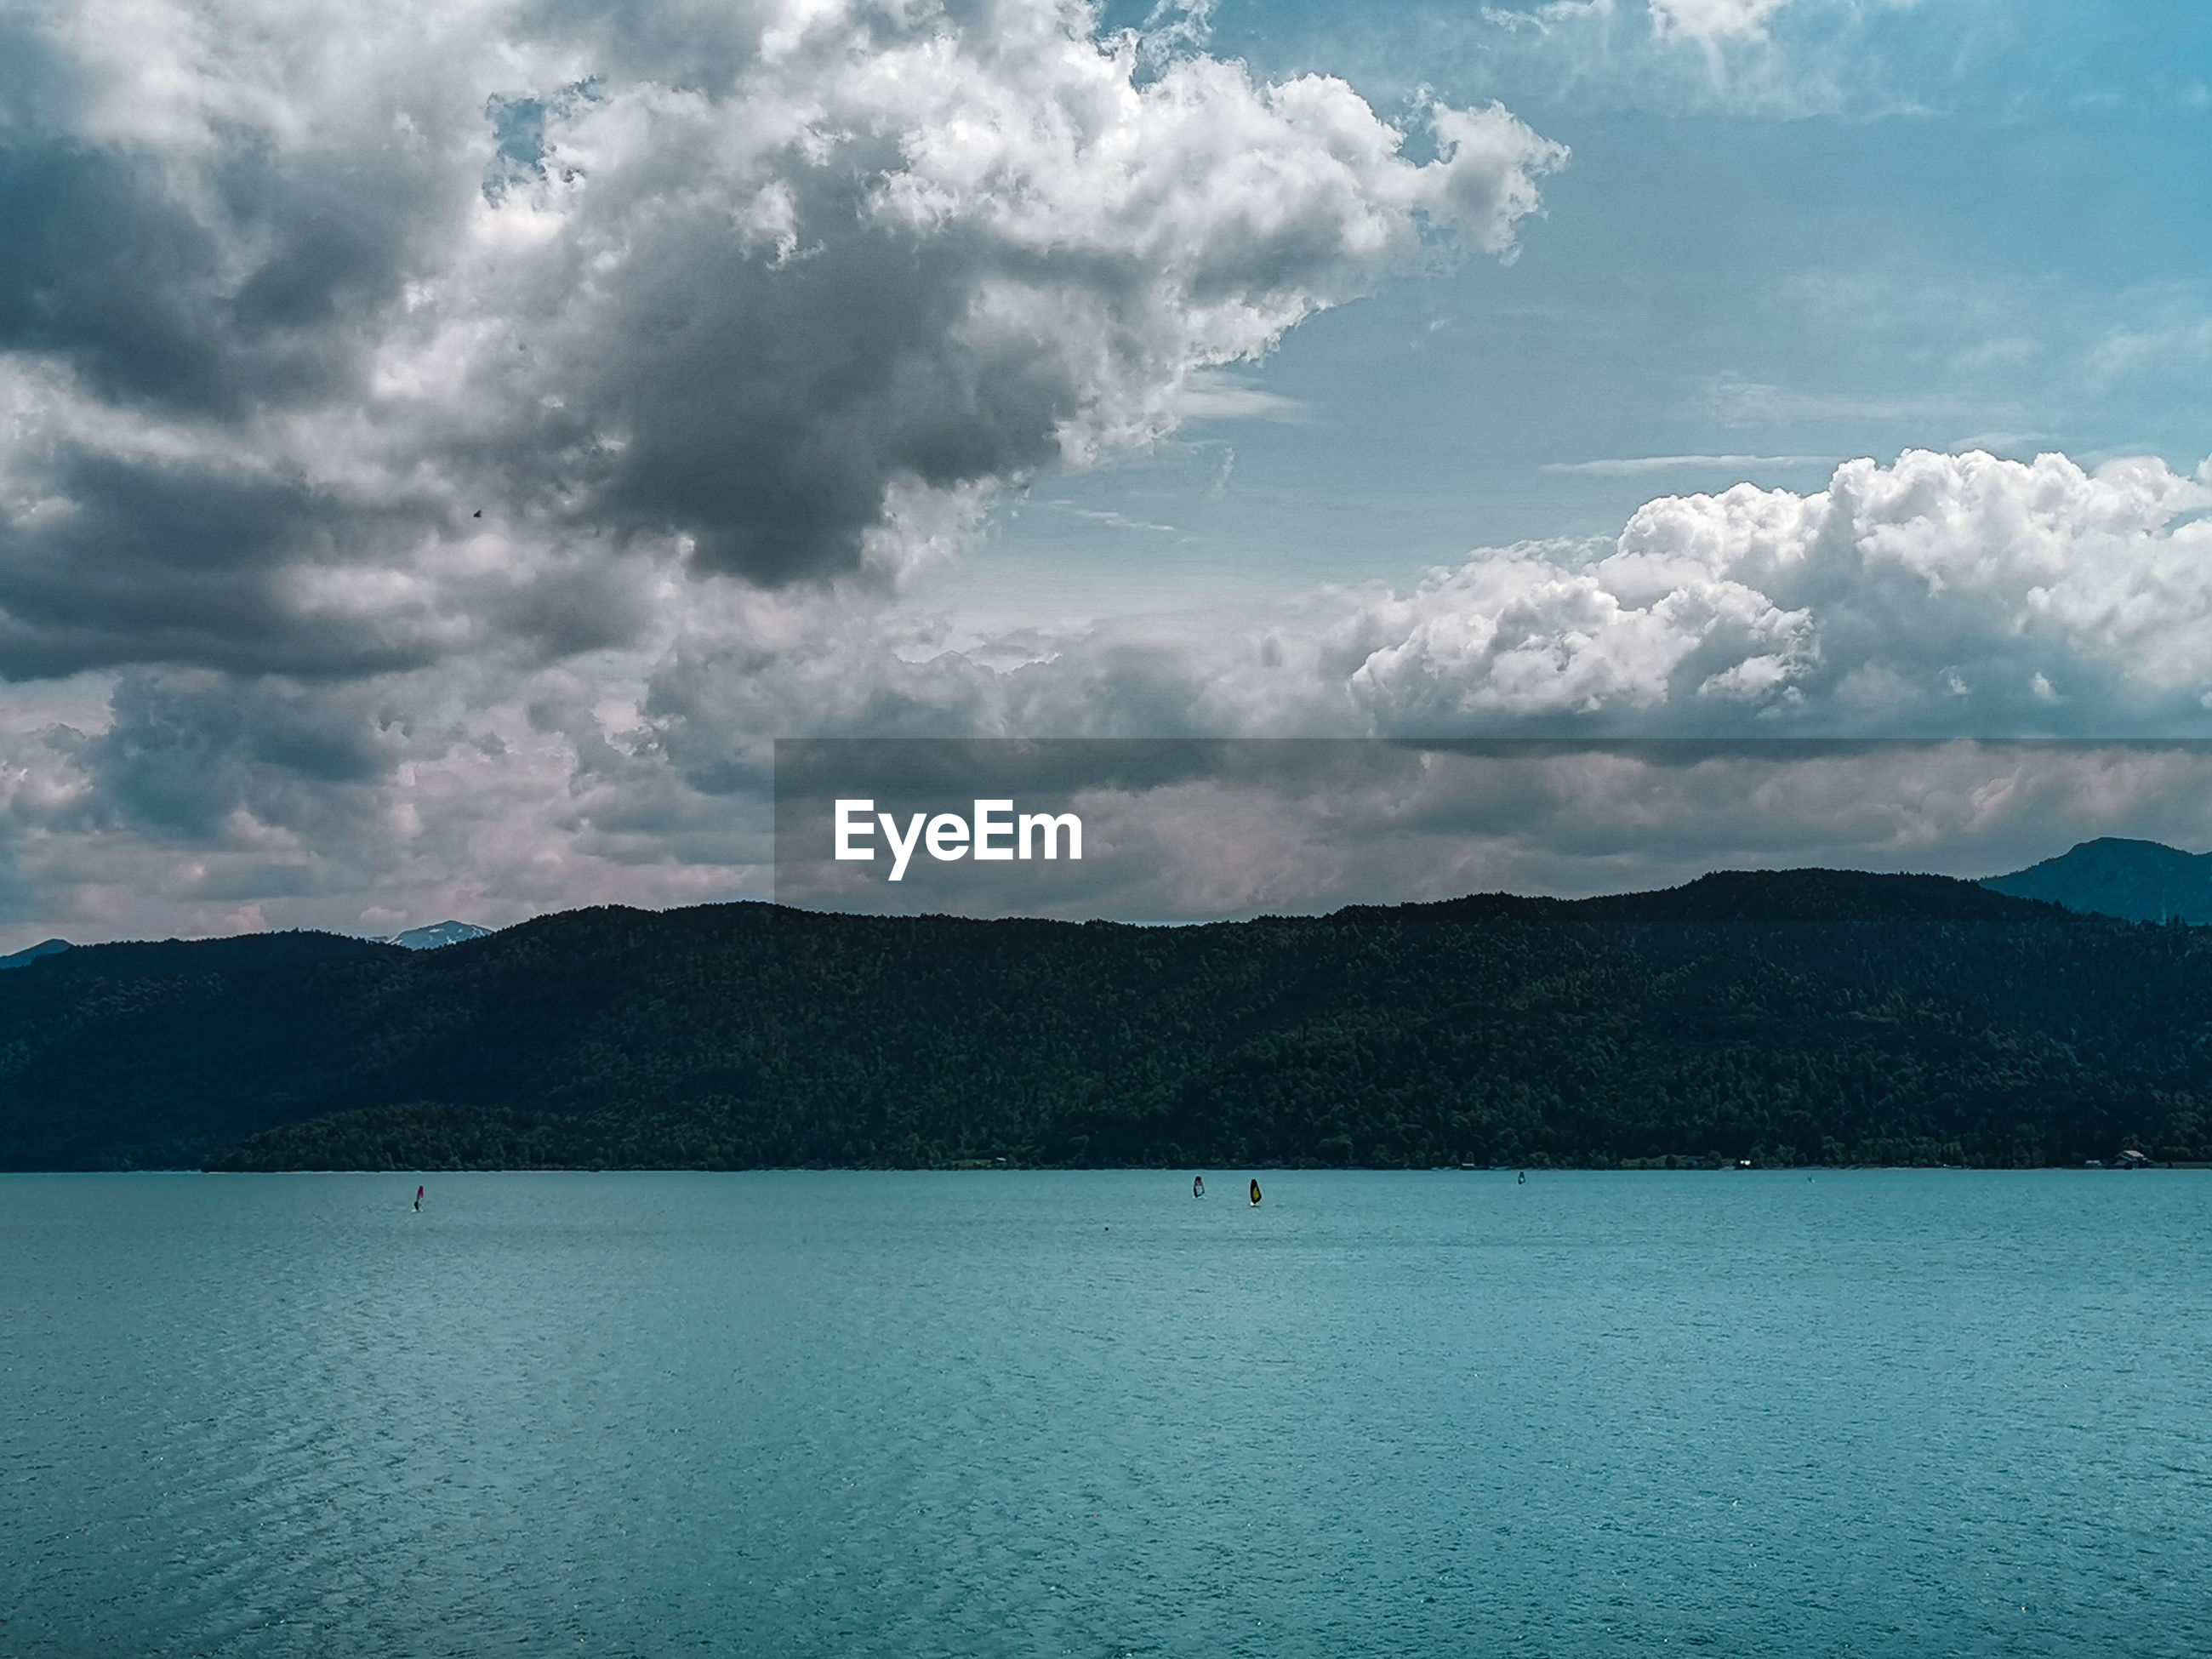 Upcoming clouds over lake walchensee and mountains, with kiters on the lake, bavaria, germany